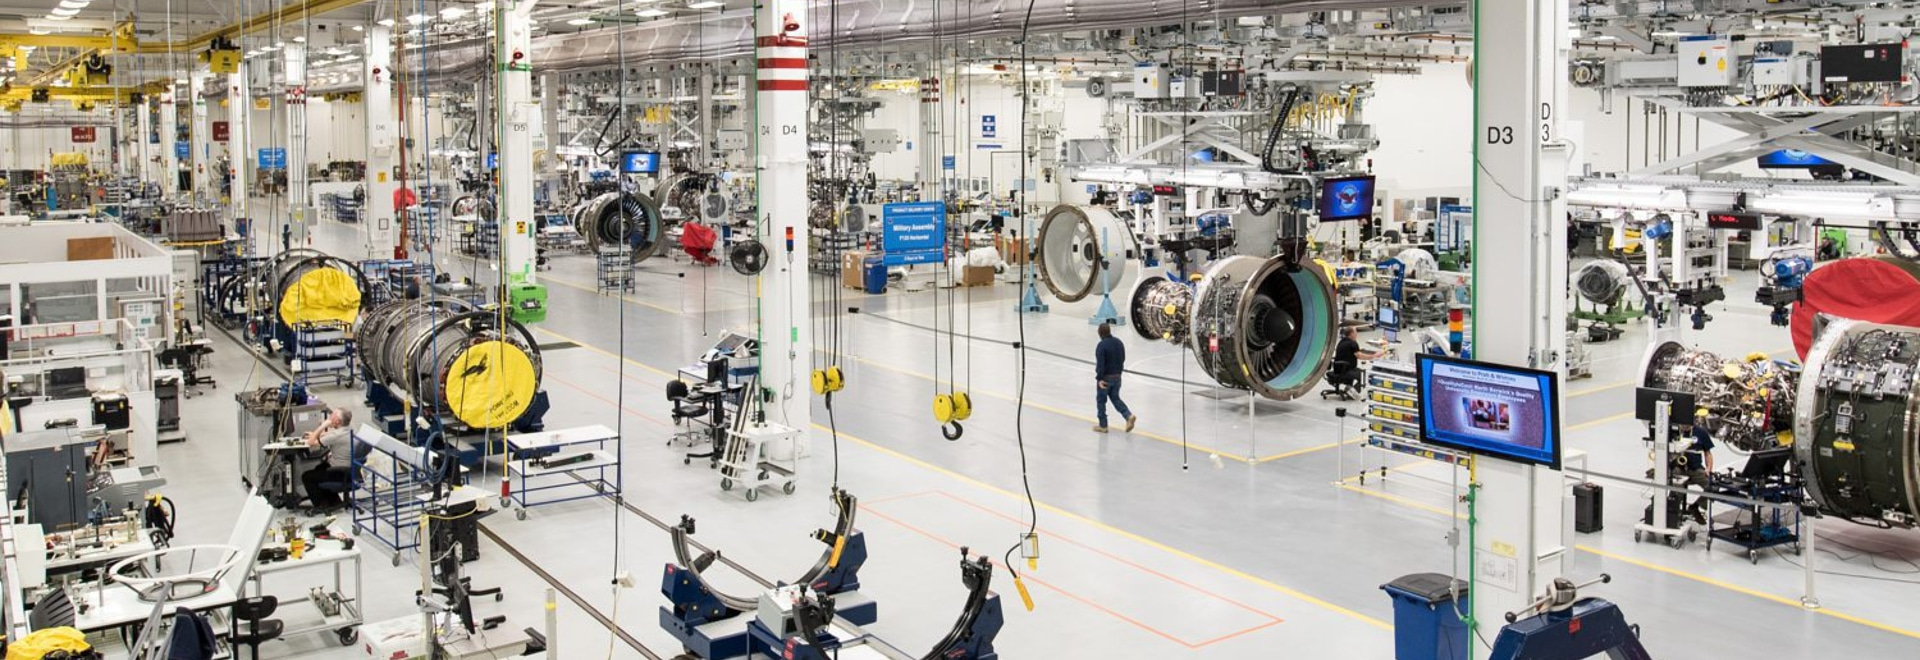 Why are Raytheon and United Technologies merging?